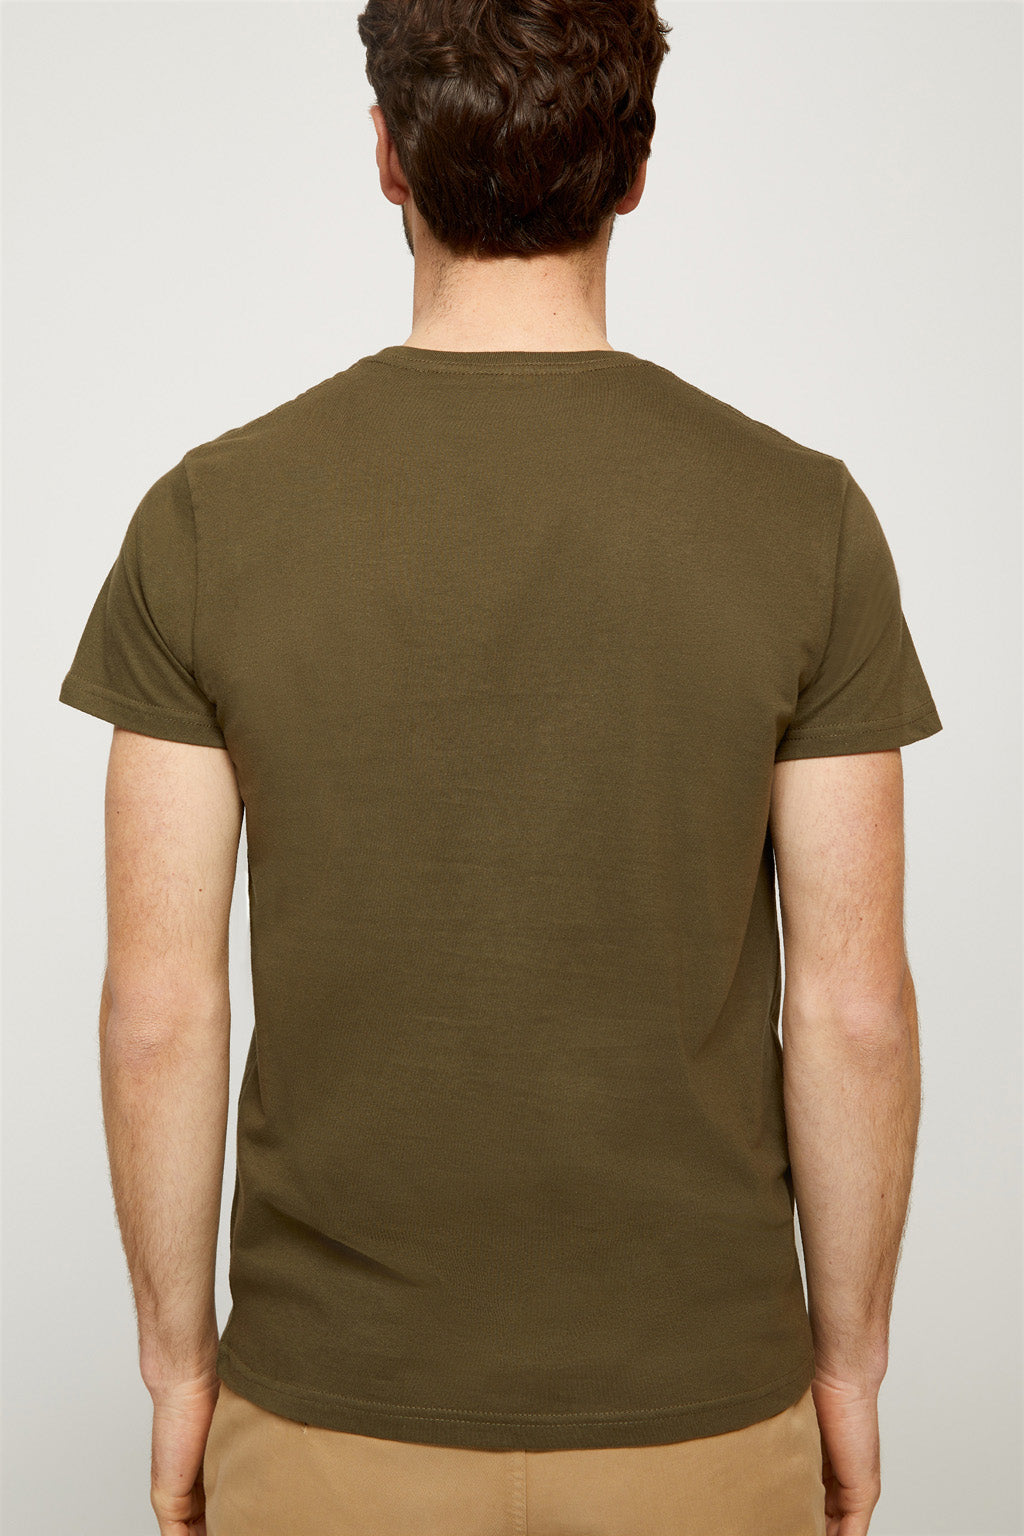 Khaki tee with embroidered logo